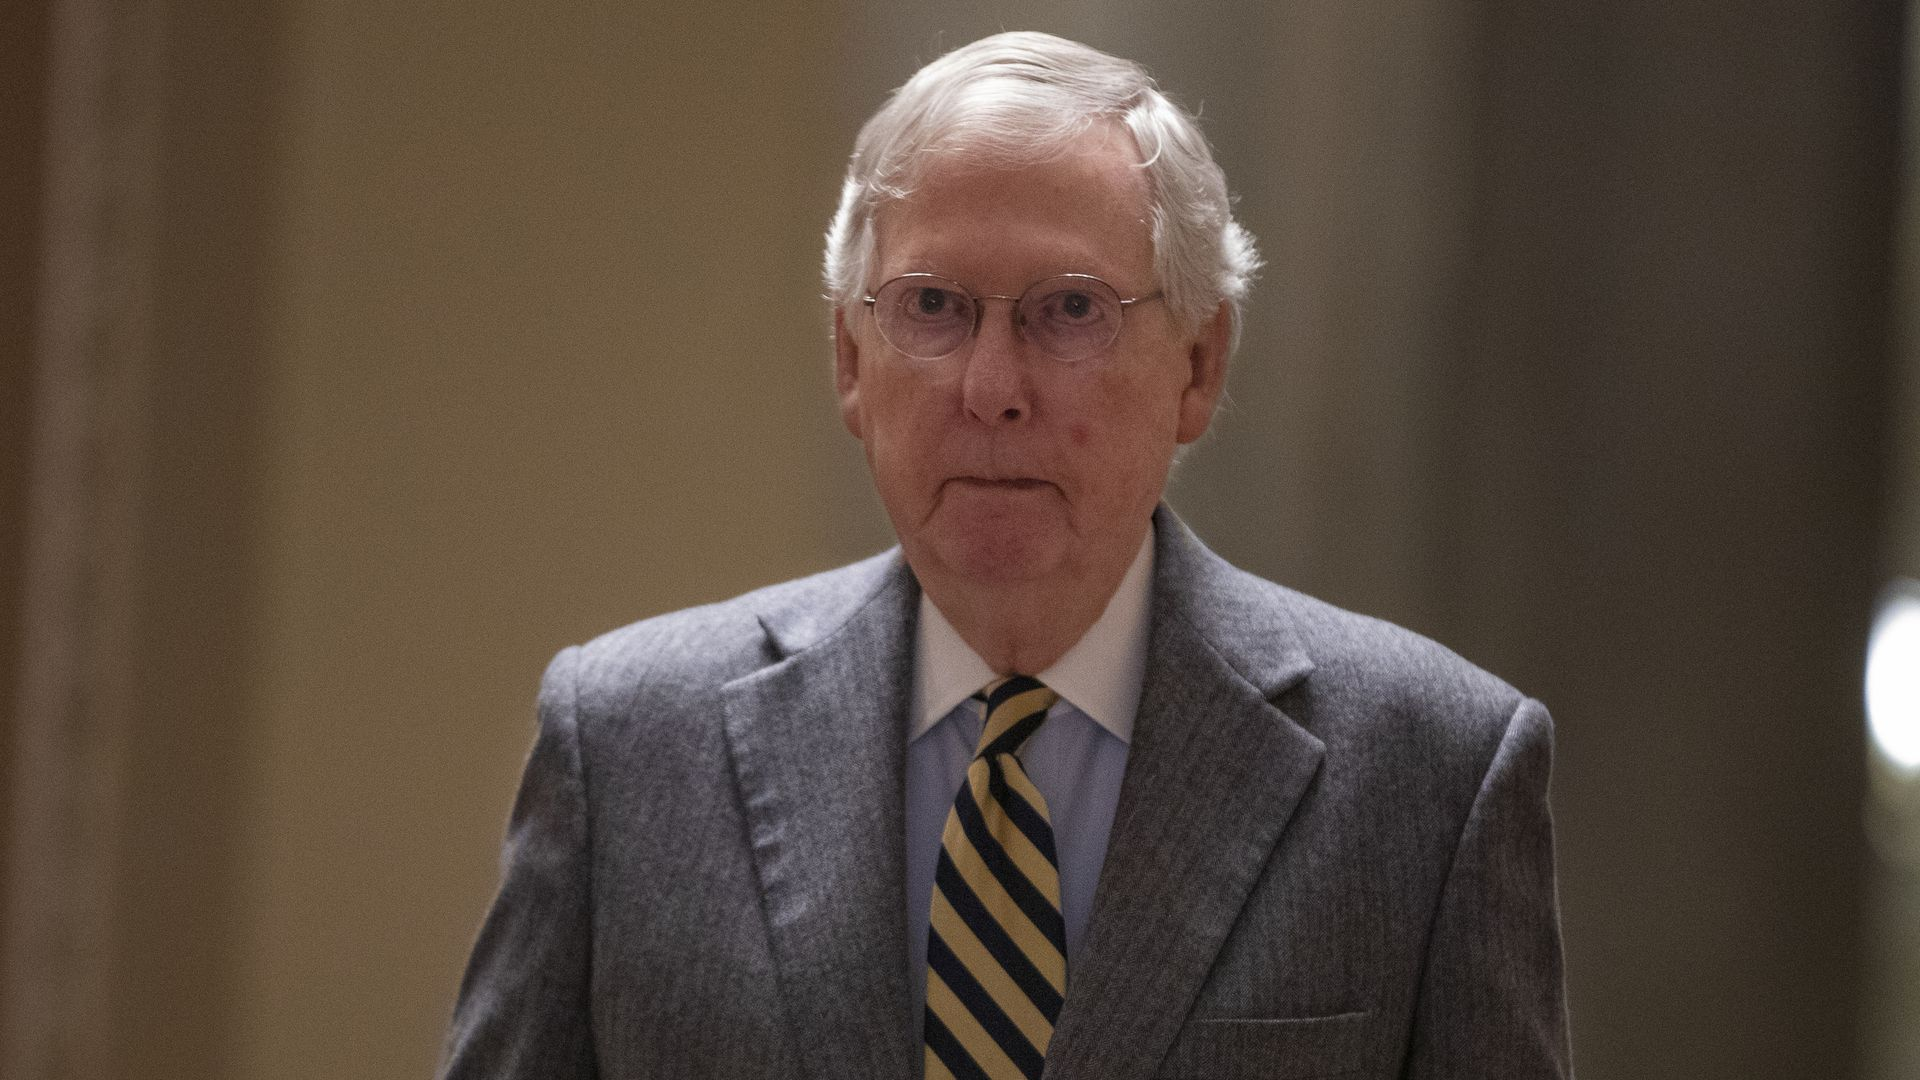 New spending group Fix Our Senate launches to get Mitch McConnell out of office